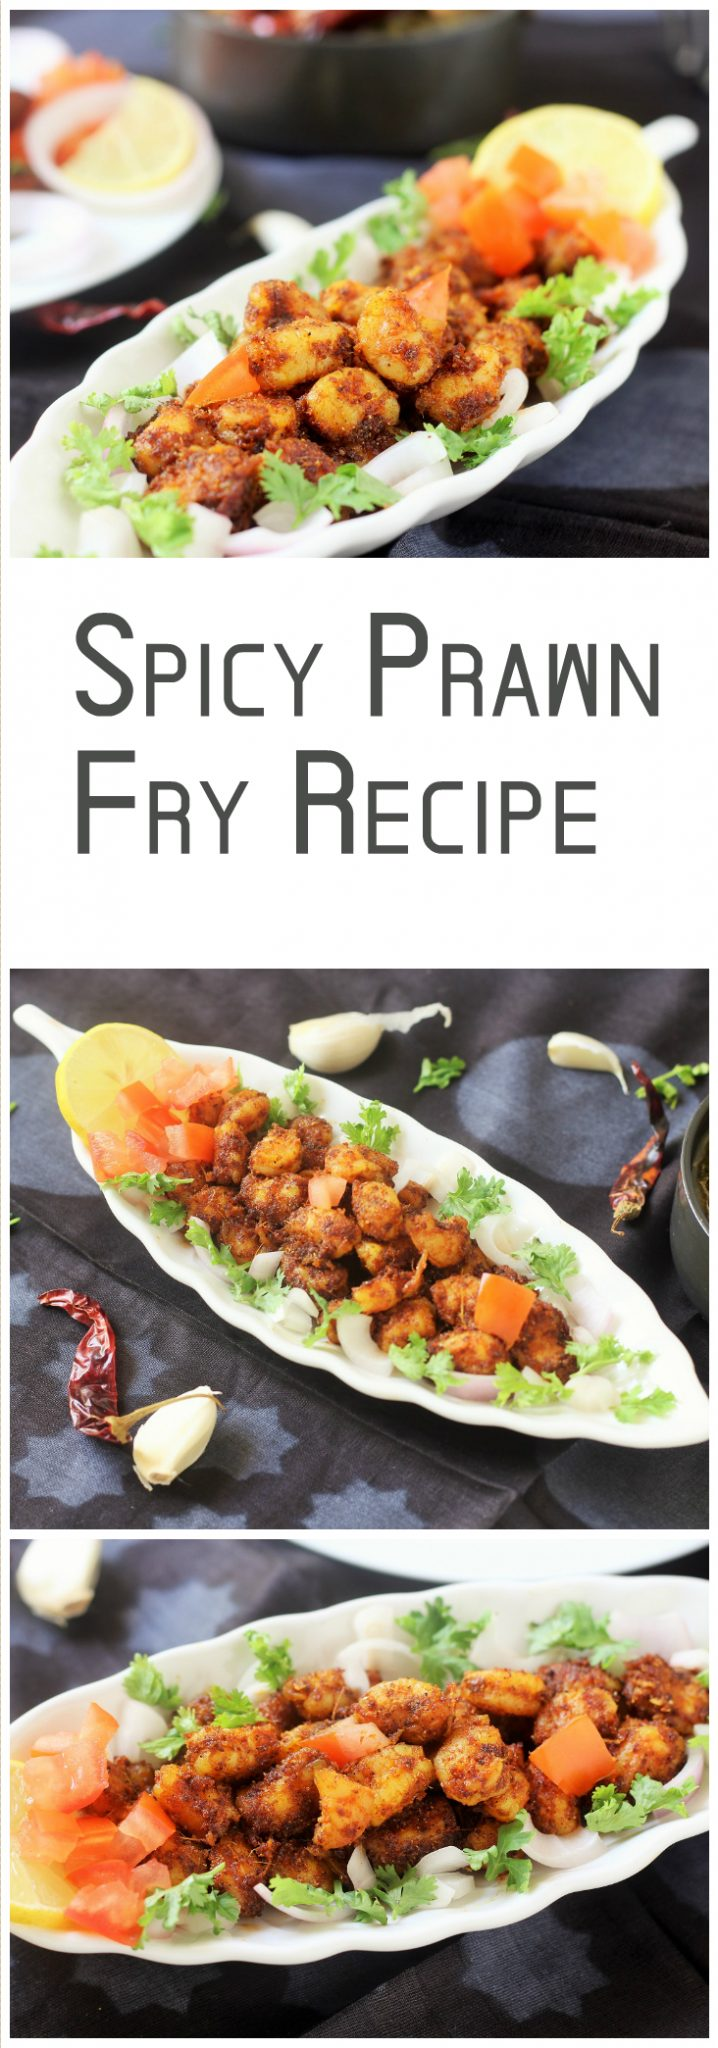 crispy and delicious spicy prawn fry recipe